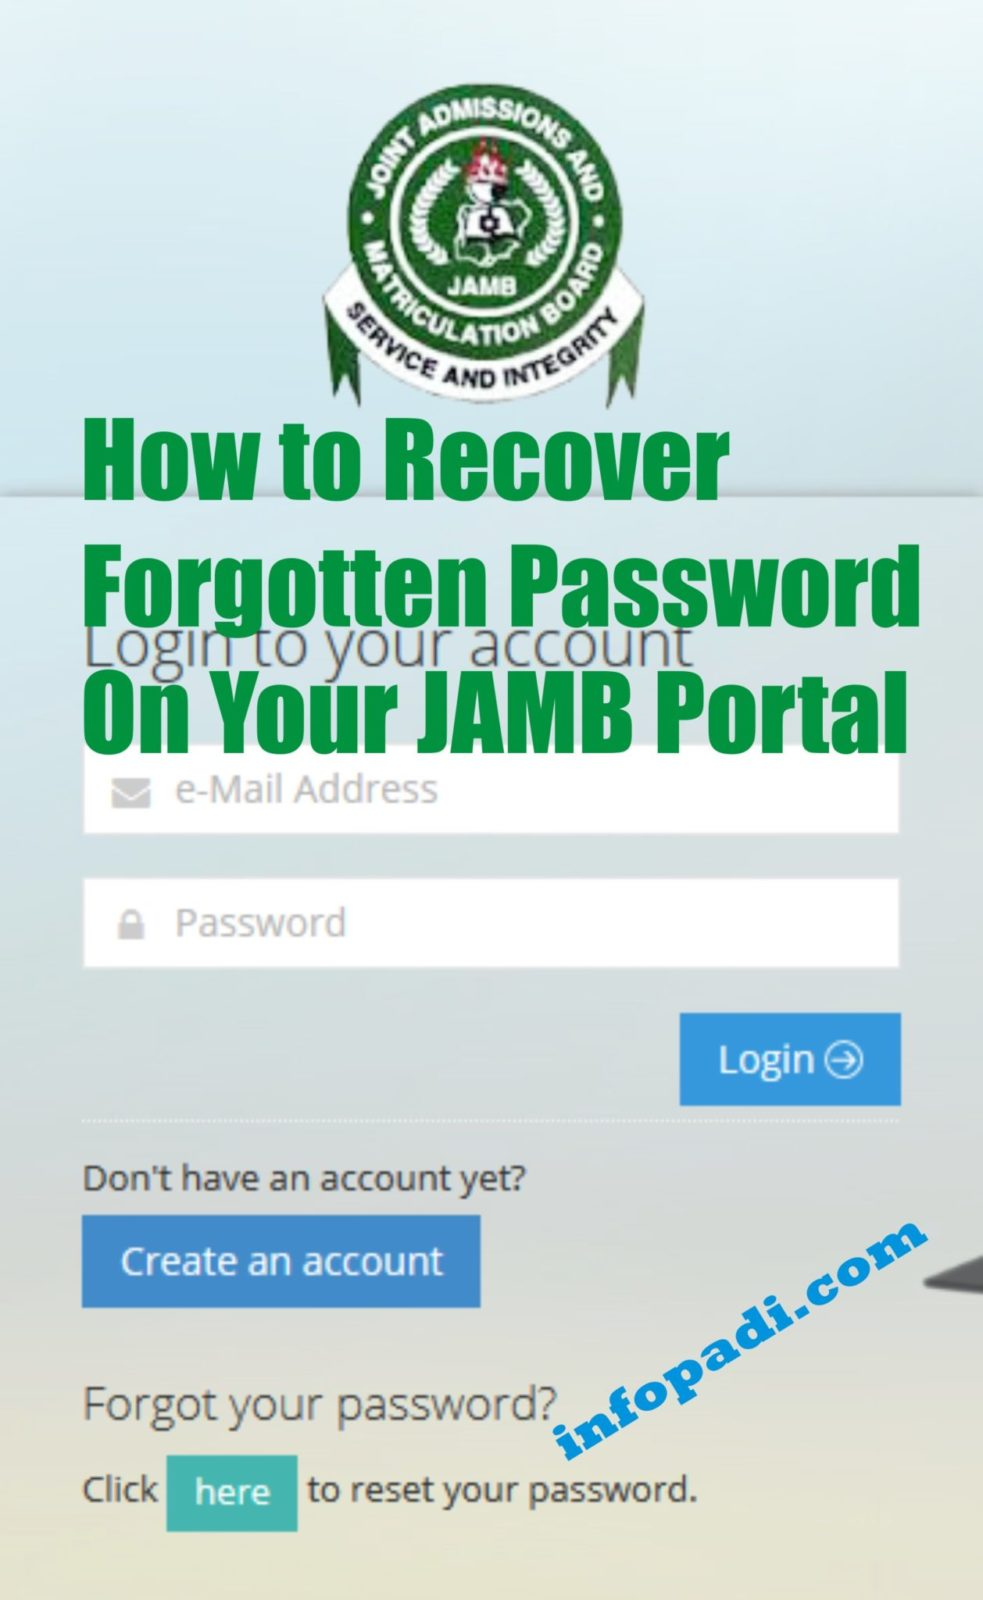 JAMB PORTAL- How to recover your forgotten email and password on JAMB CAPS Portal